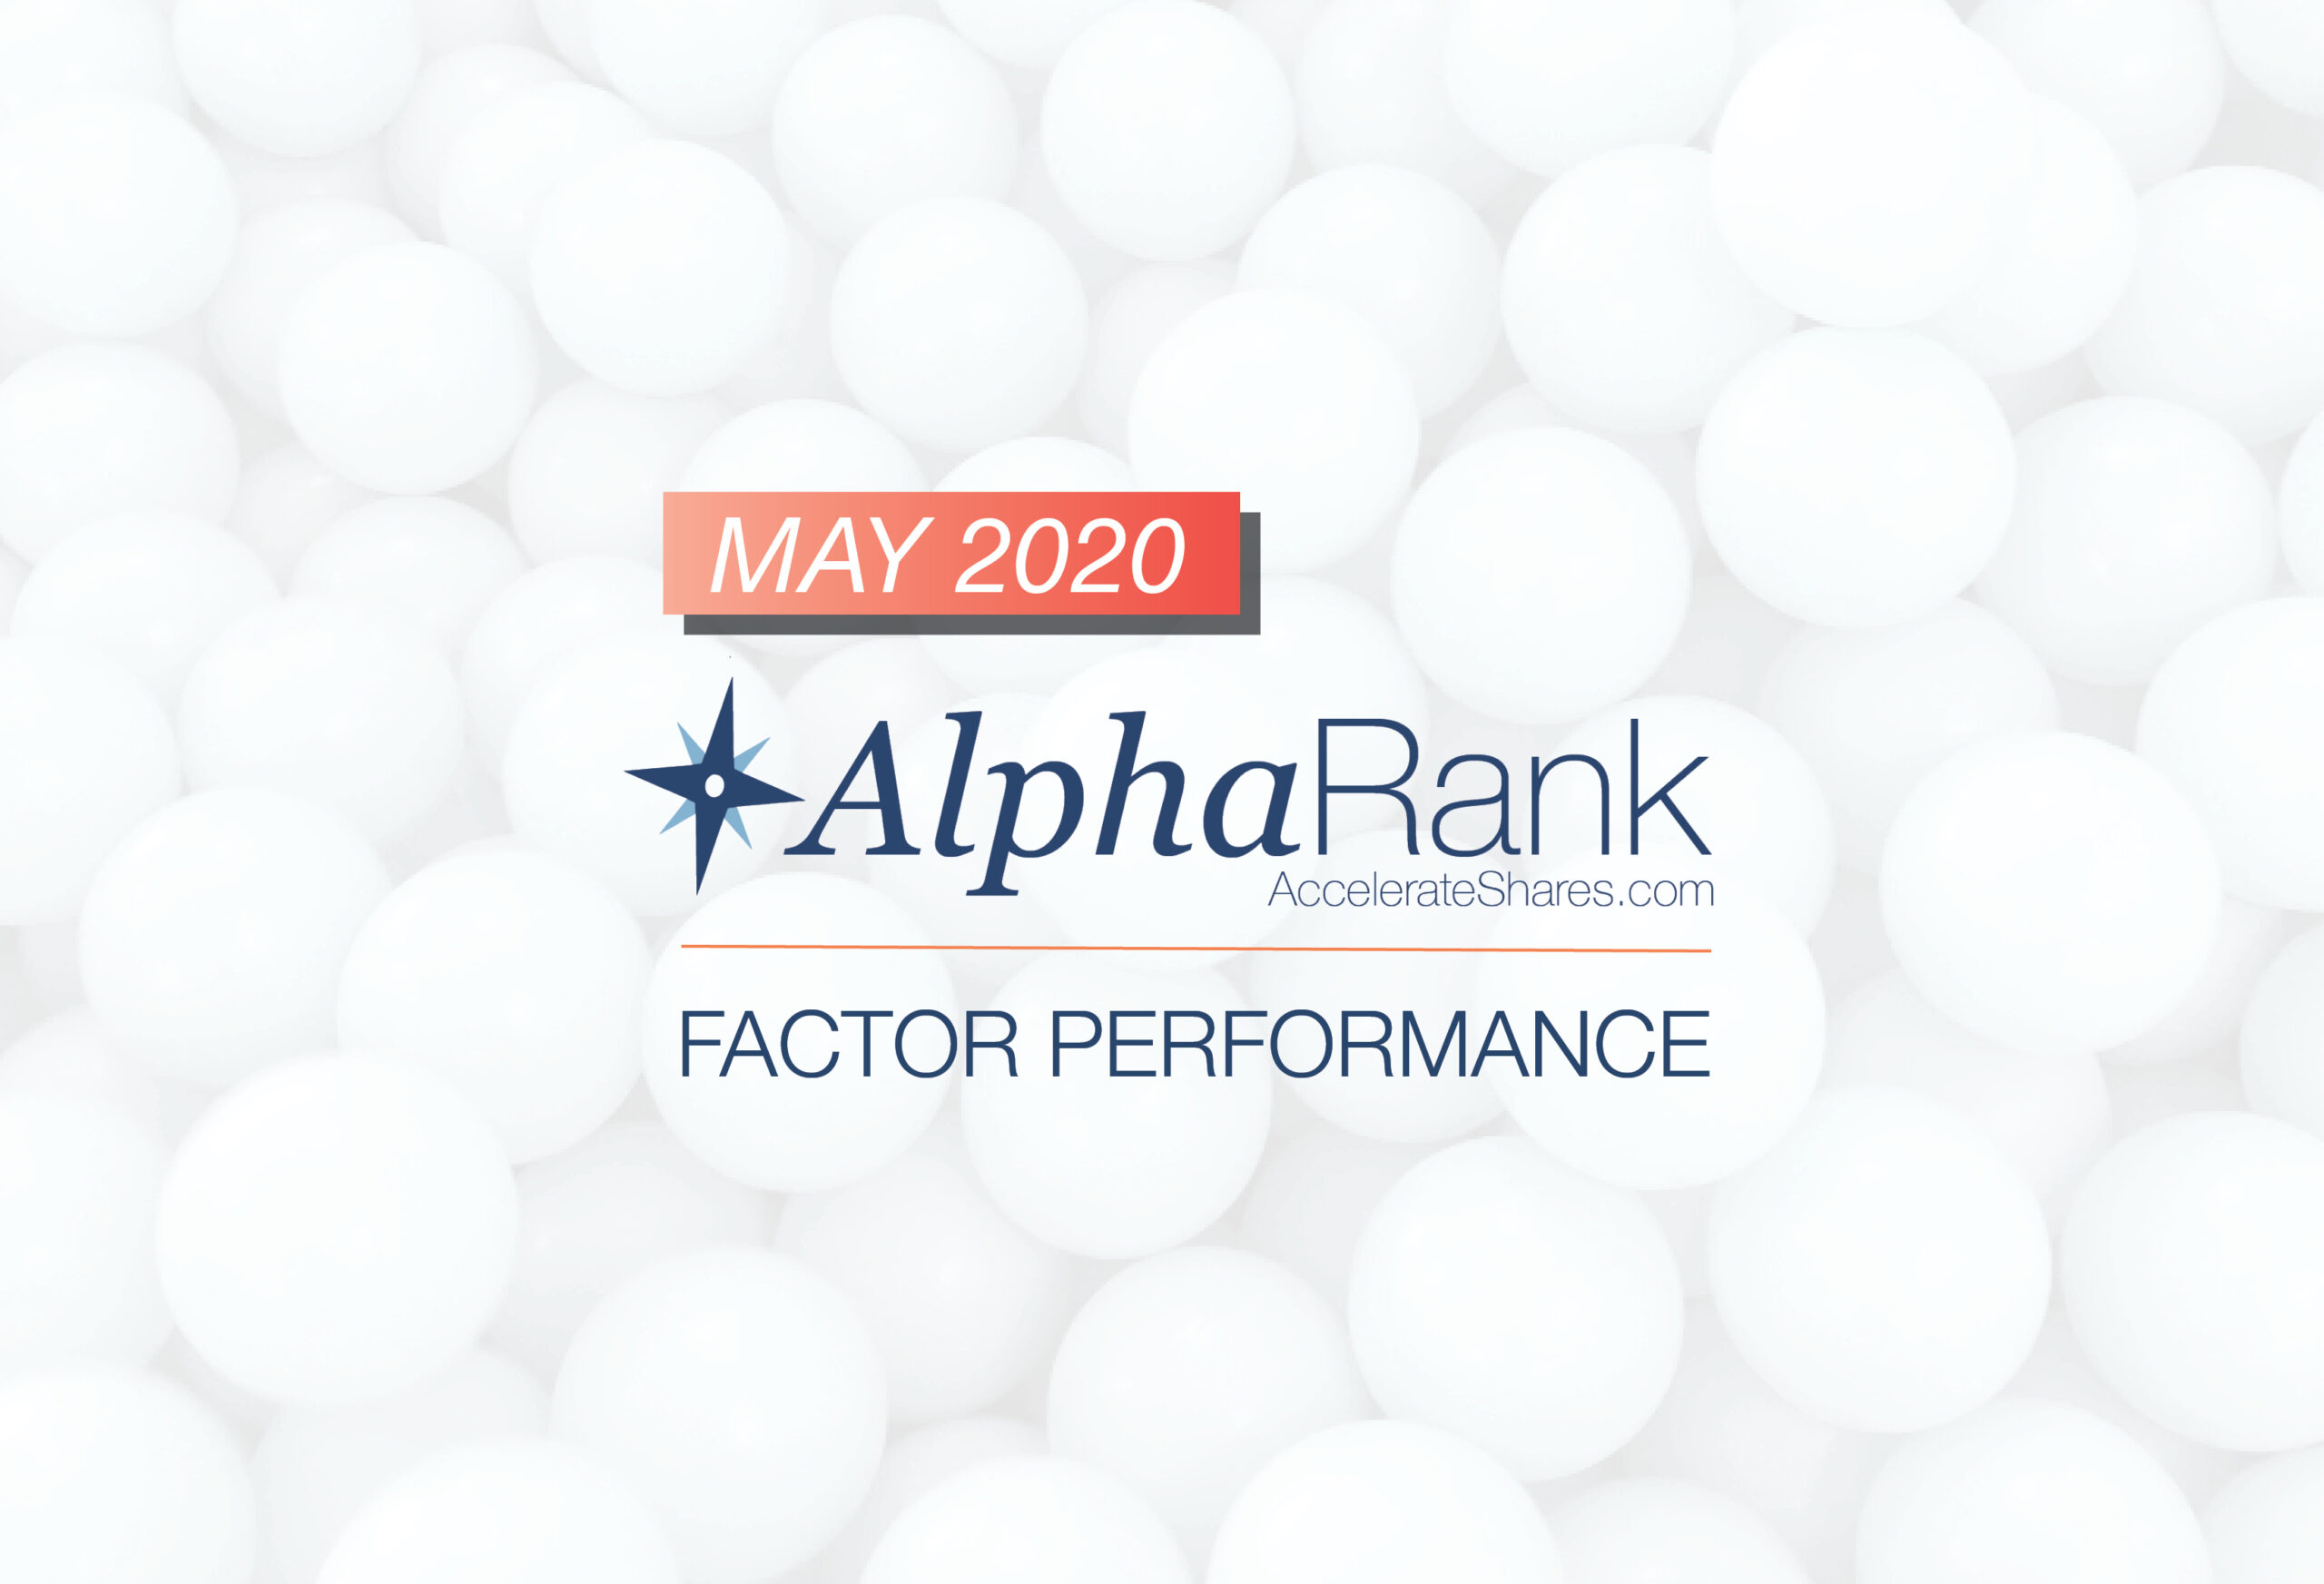 AlphaRank Factor Performance– May 2020